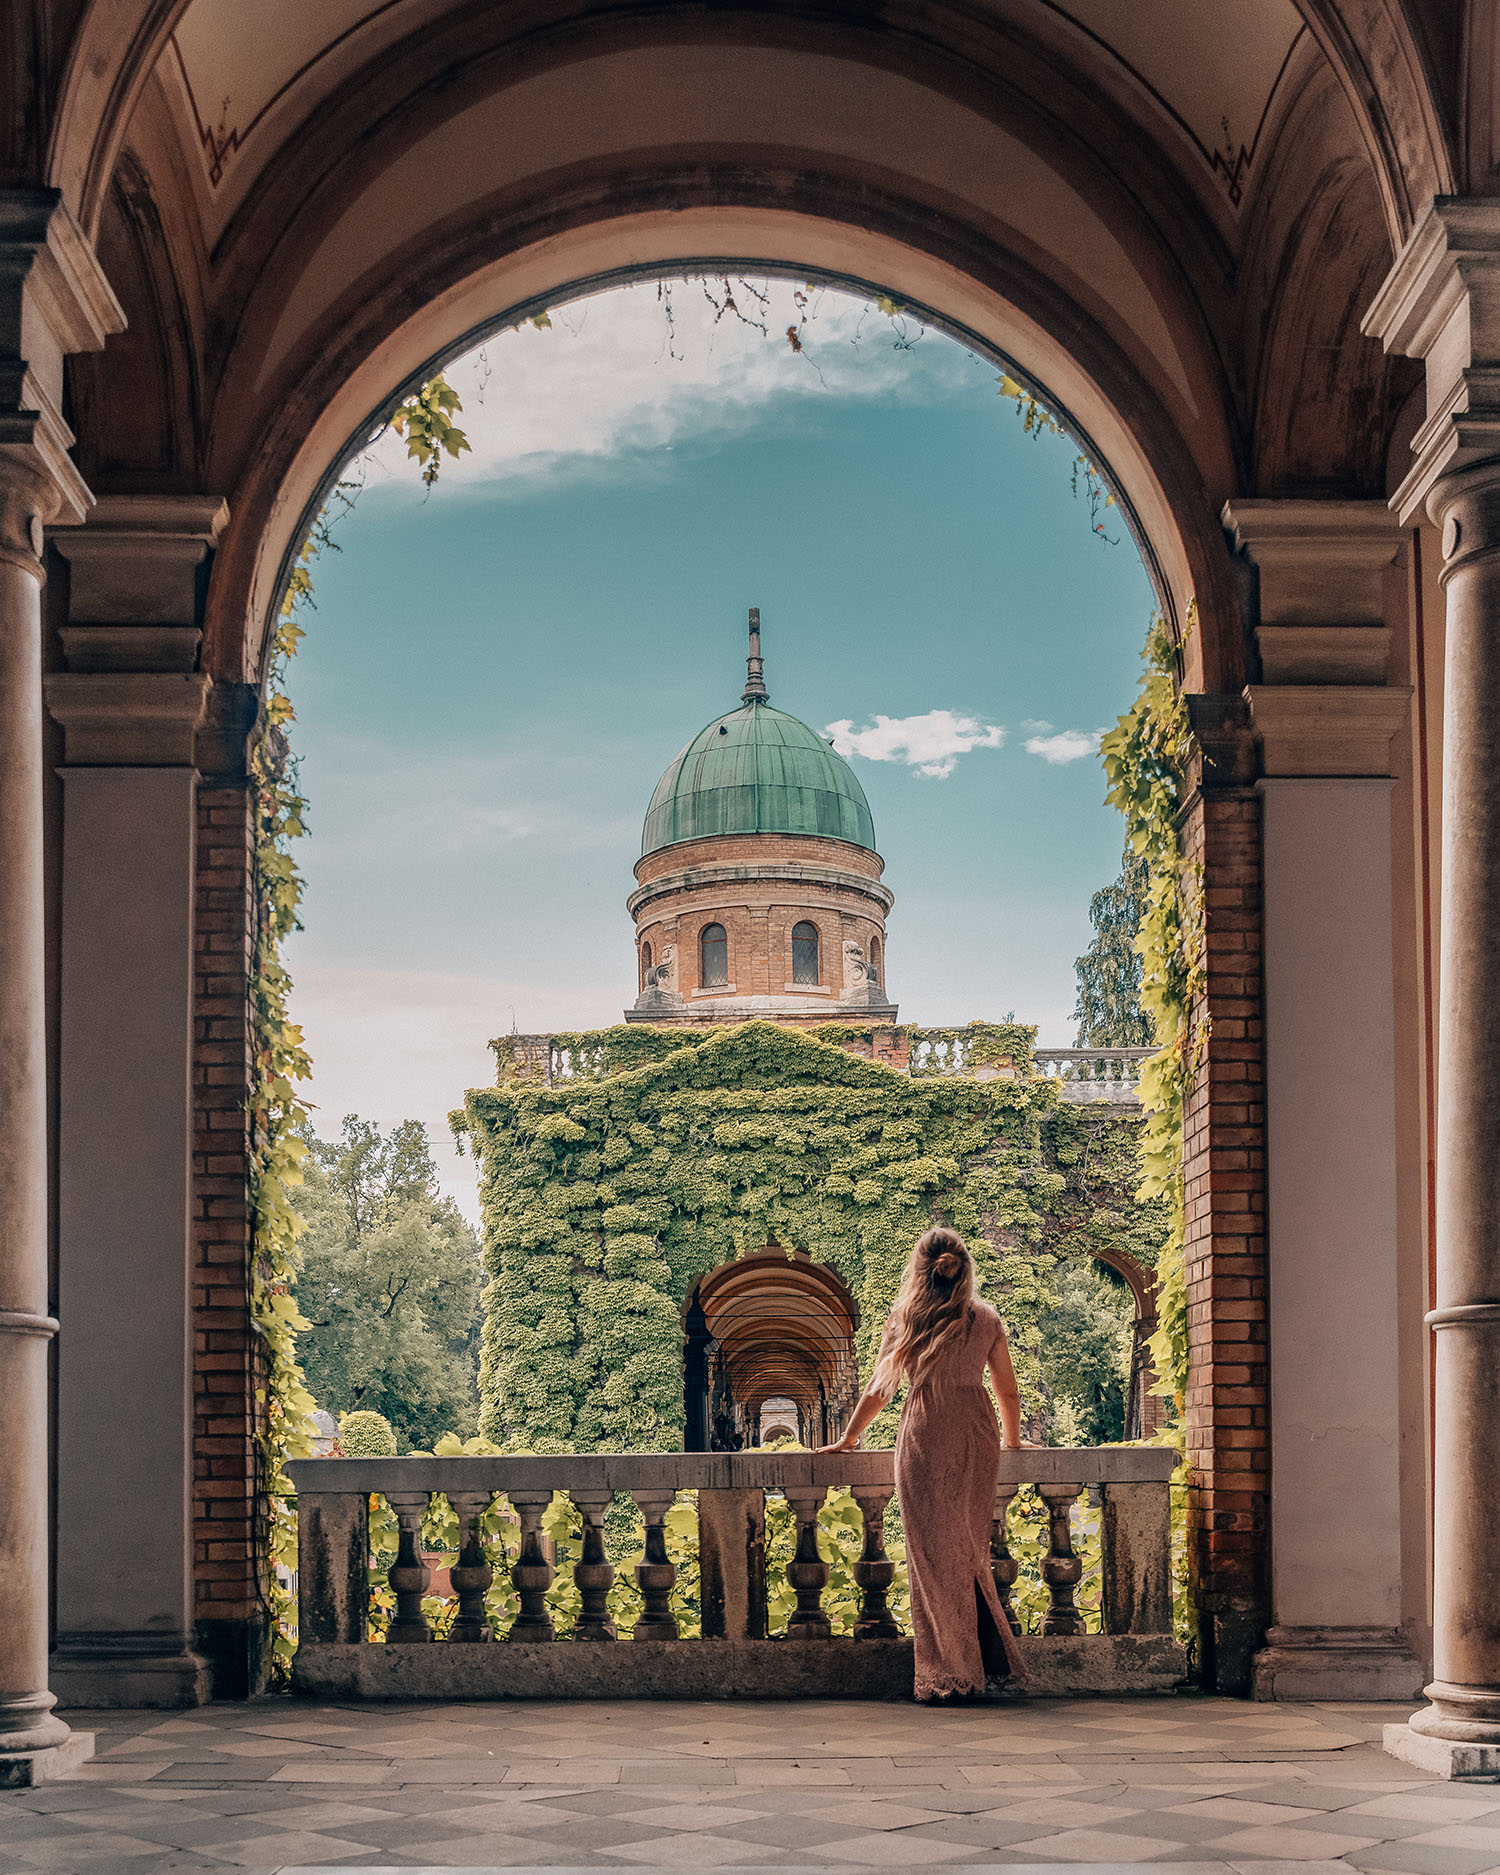 Things to do in Zagreb, Croatia: Visit the beautiful Mirogoj Cemetery